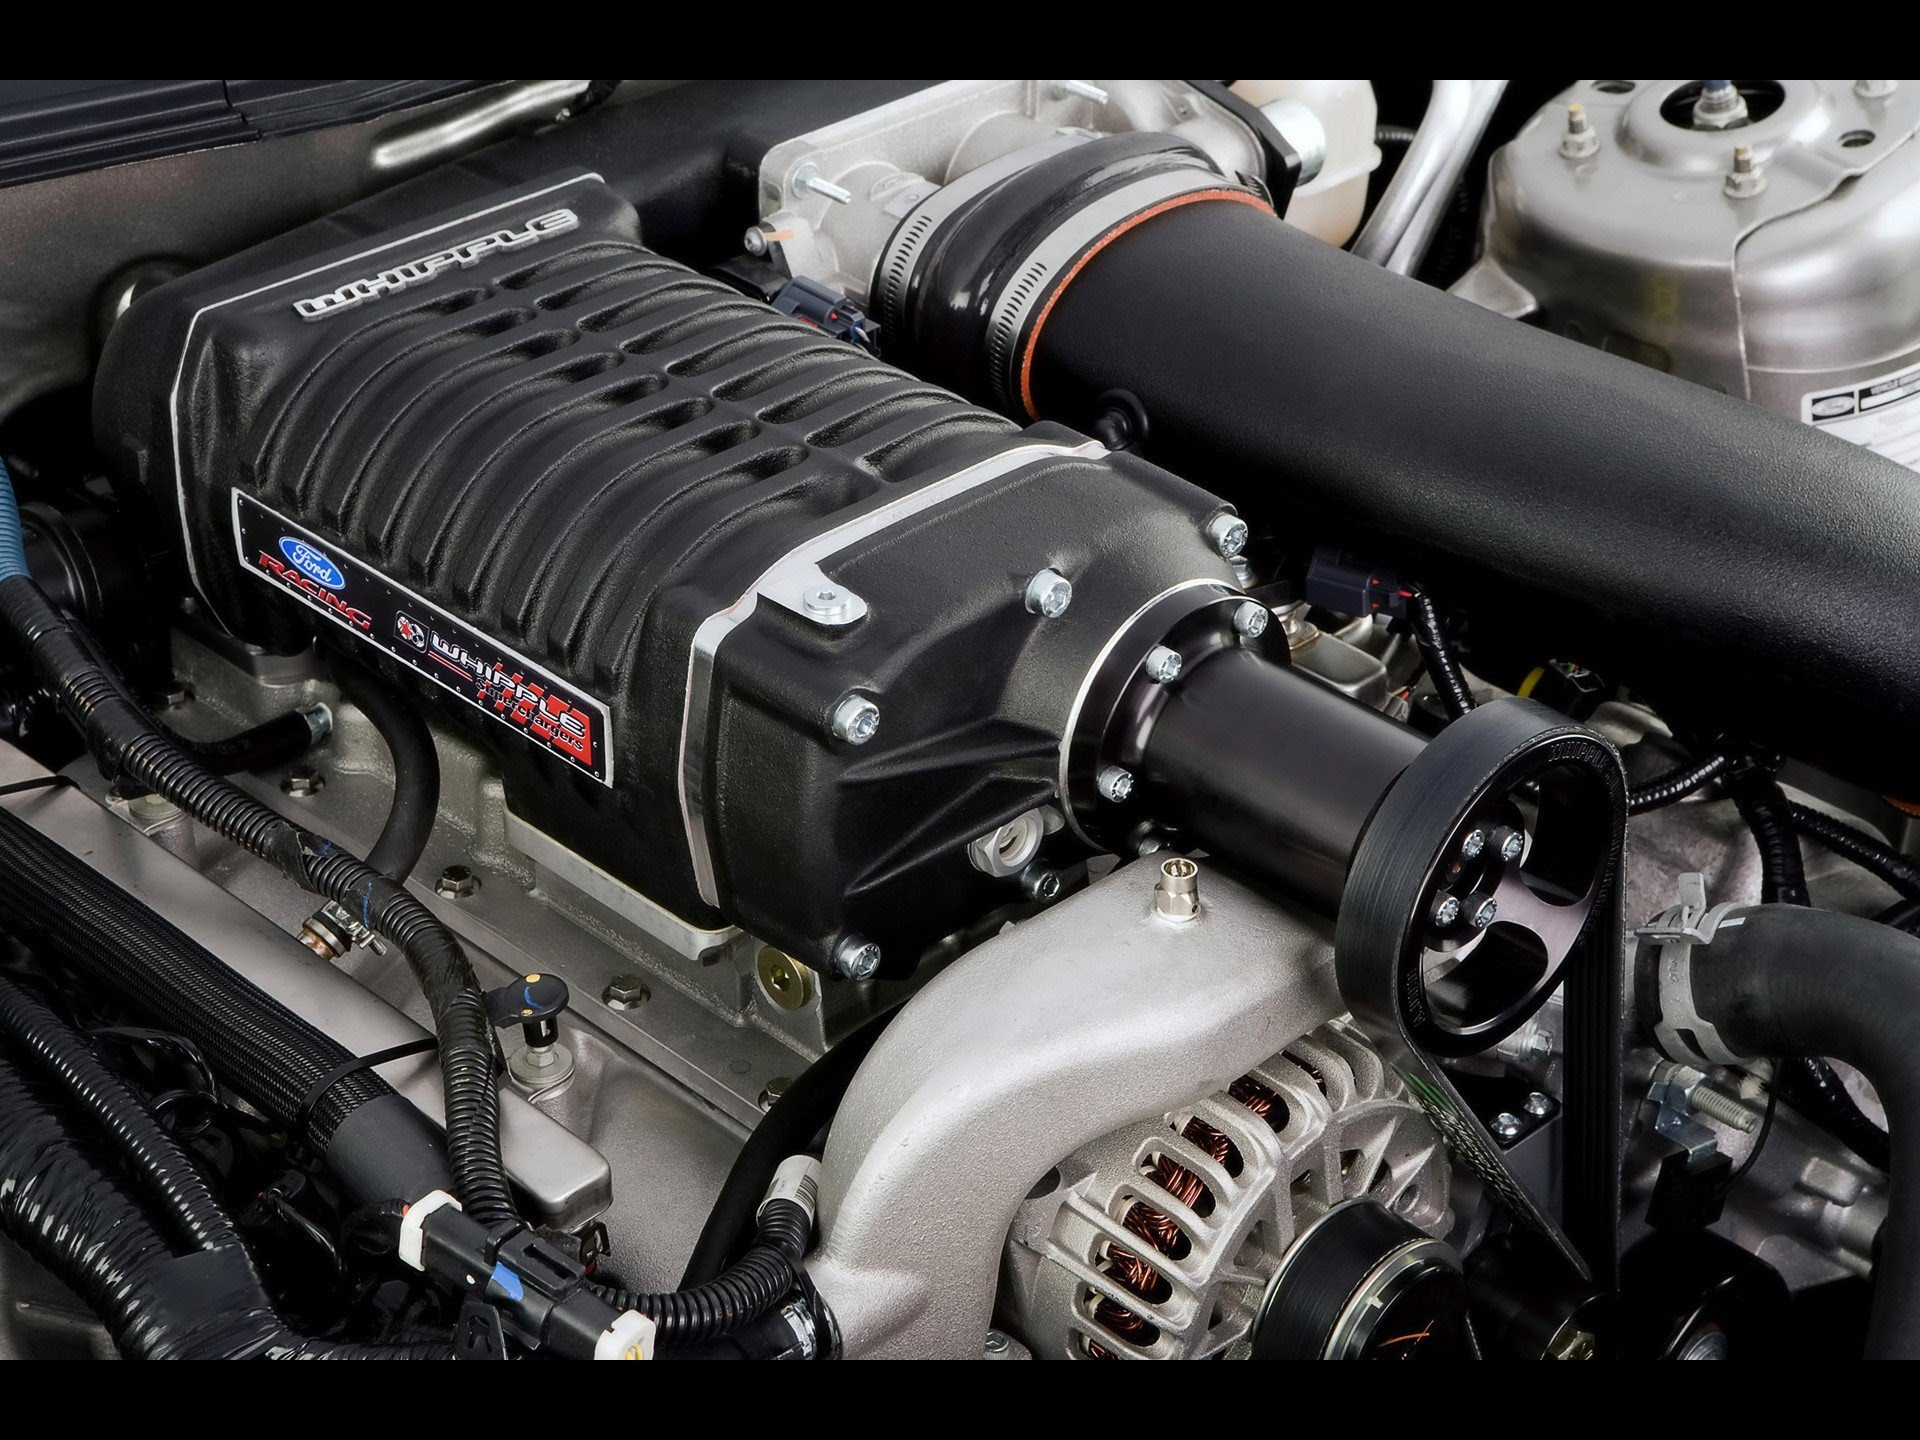 Engines muscle cars vehicles Ford Mustang supercharged V8 engine supercharger wallpaper ...